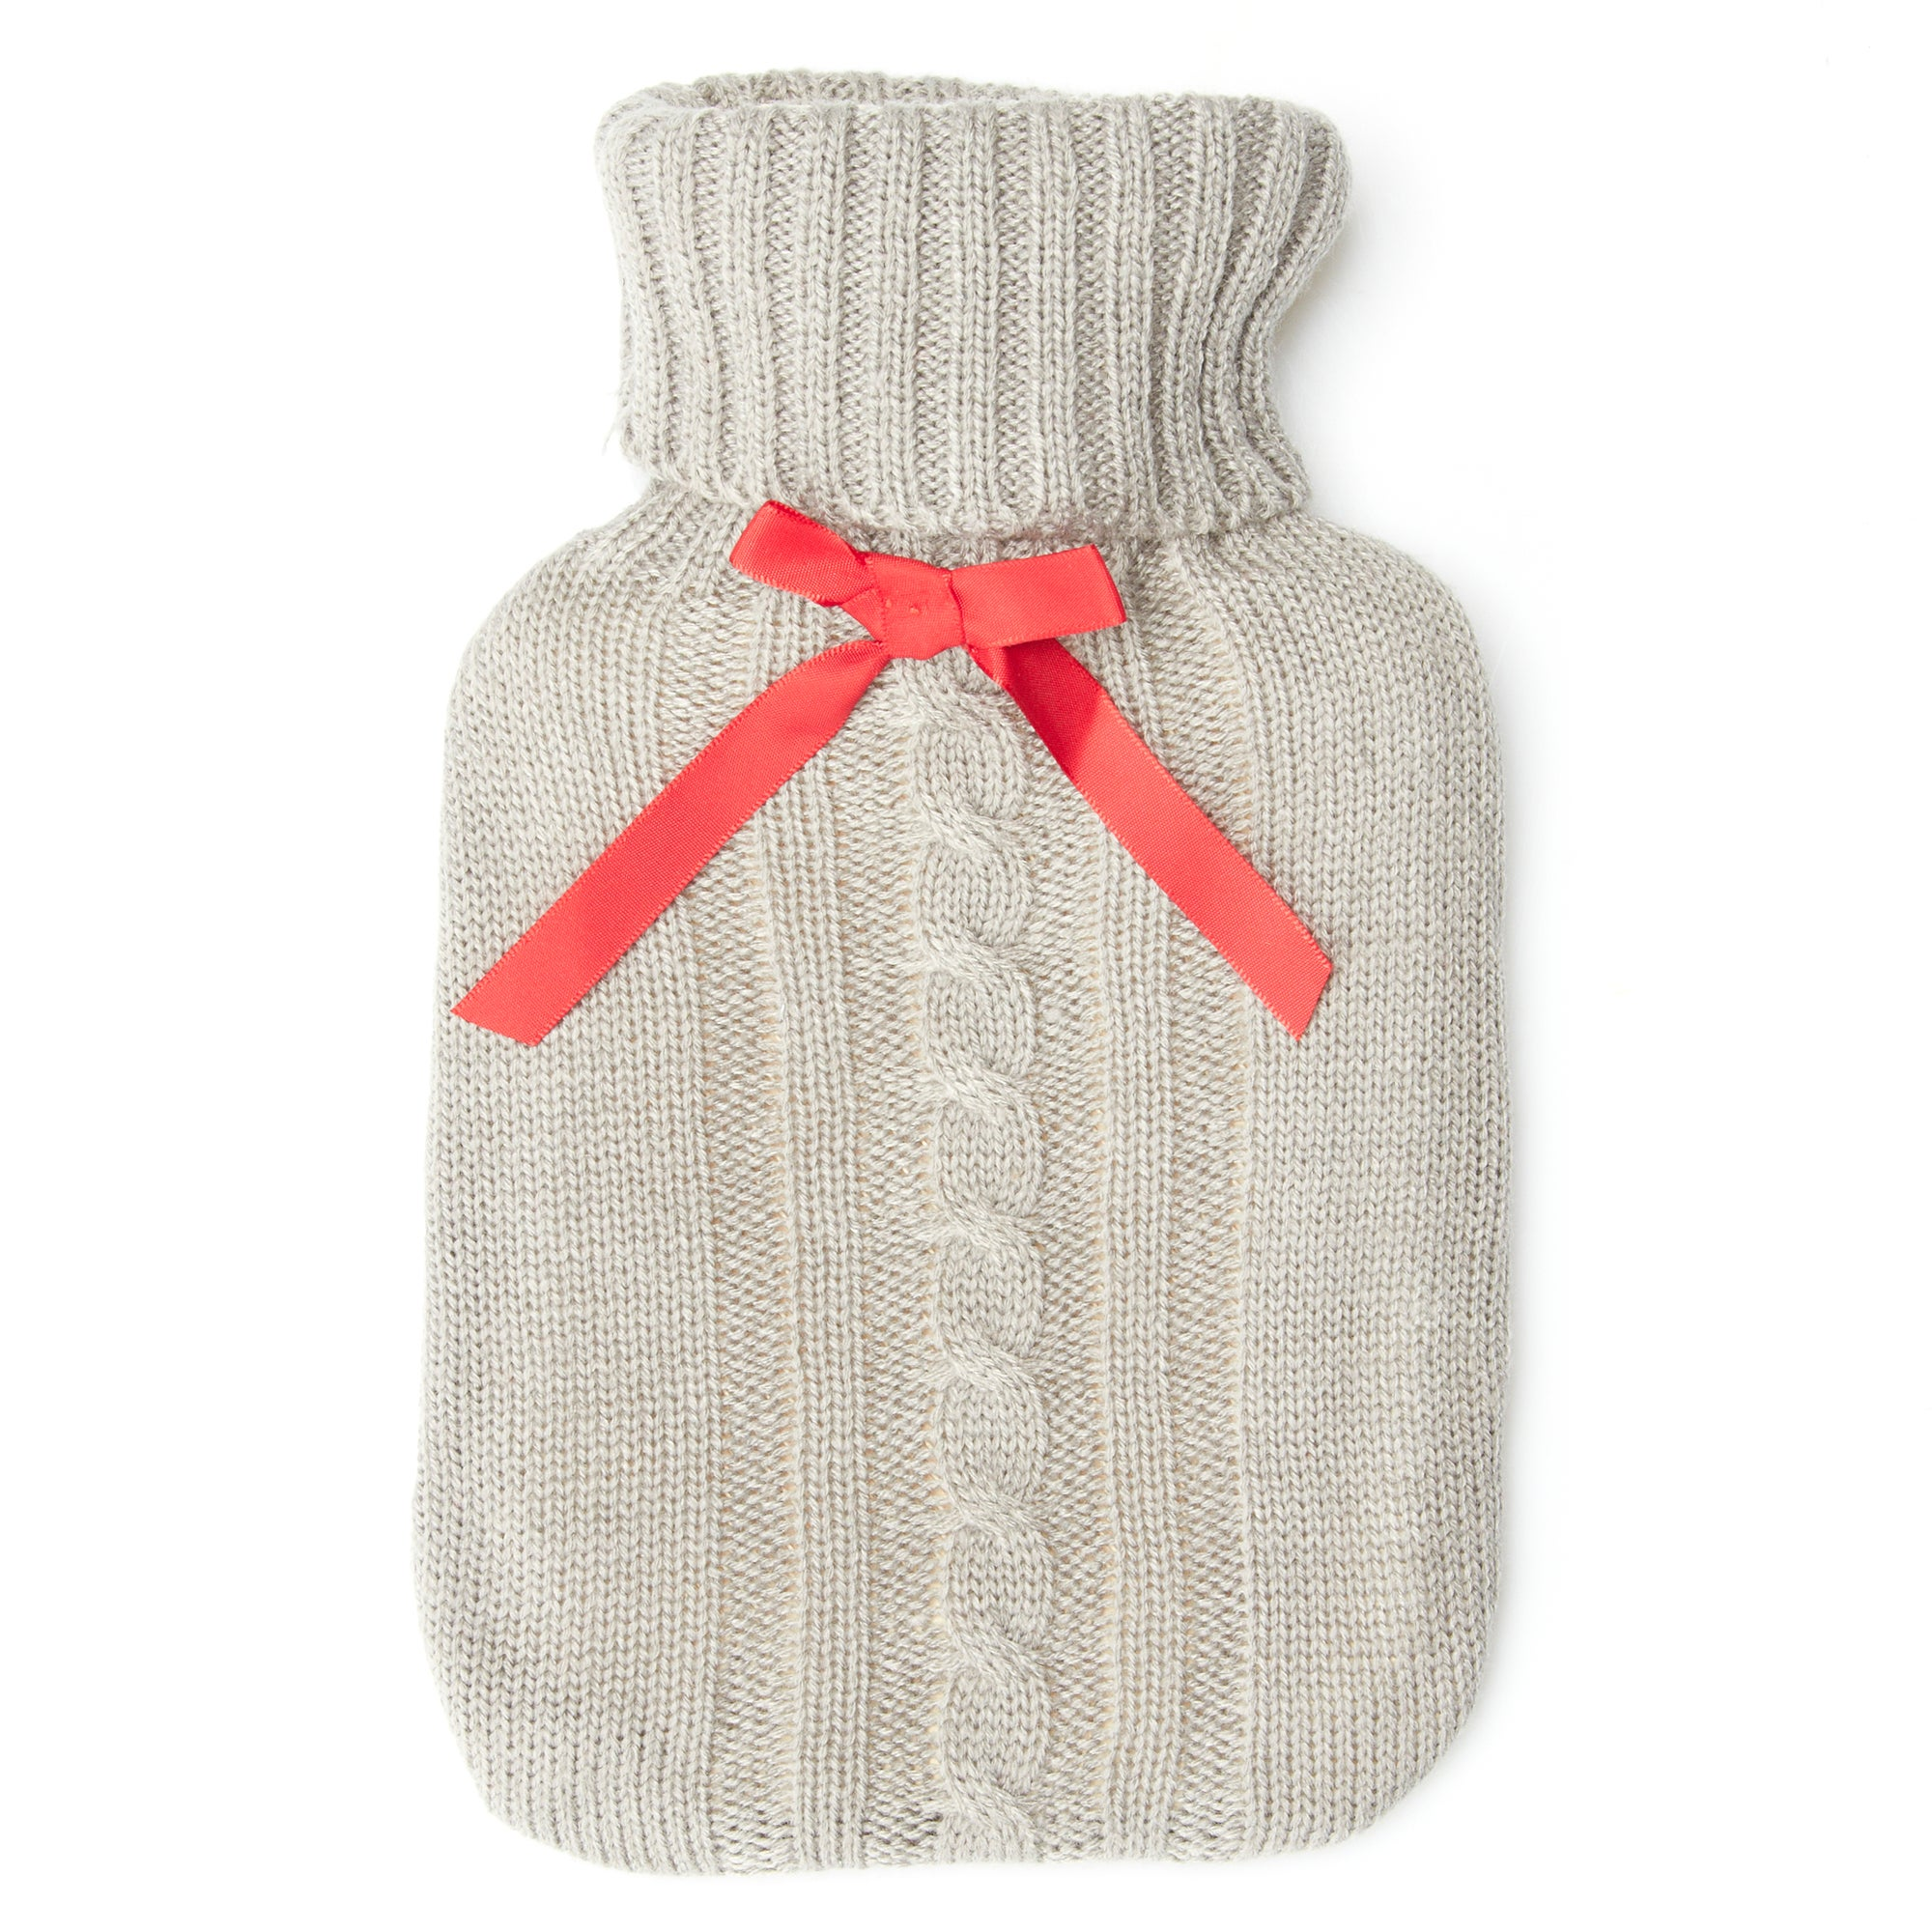 Grey Knitted Hot Water Bottle